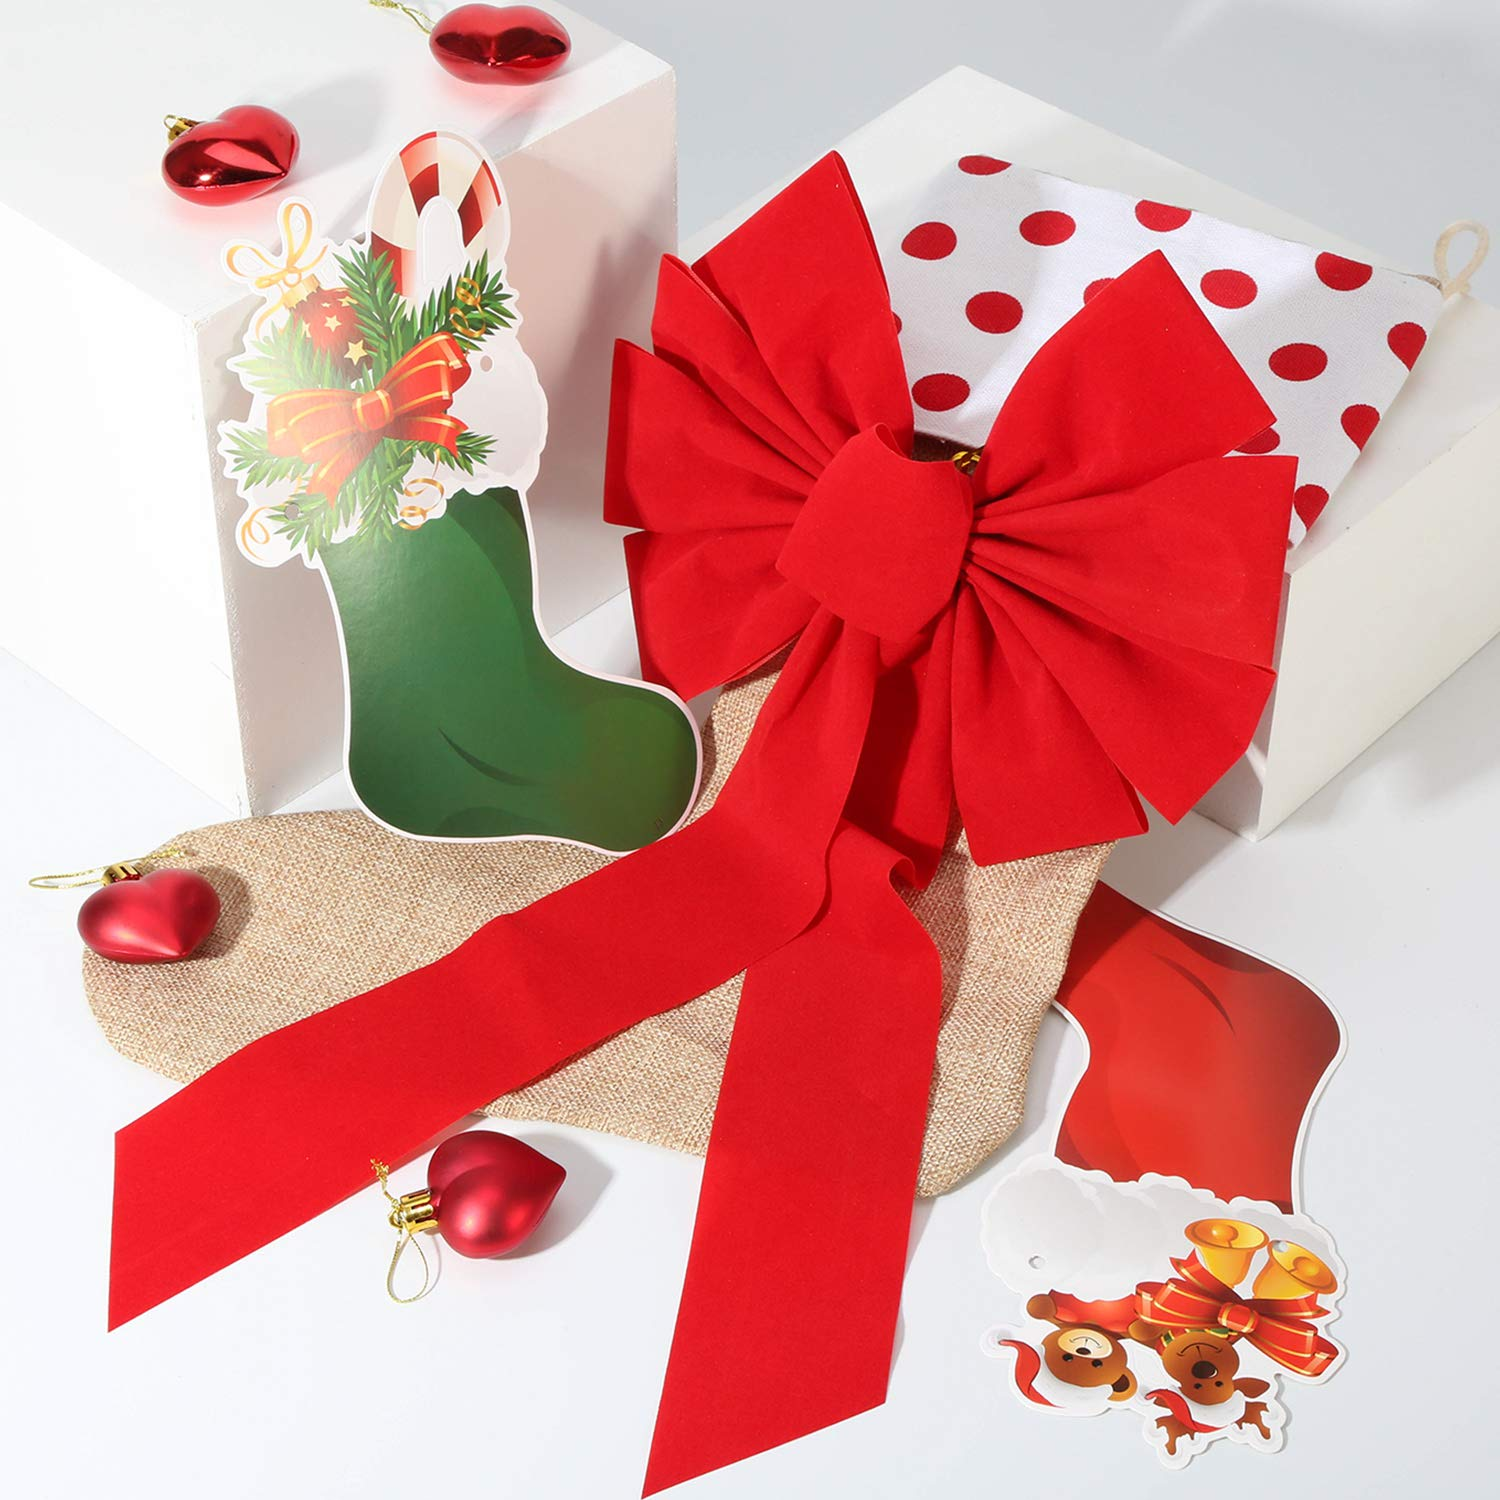 Boao Red Velvet Bow Christmas Holiday Bows for Party Wreaths Decoration 8 Pieces Totally 2 Sizes